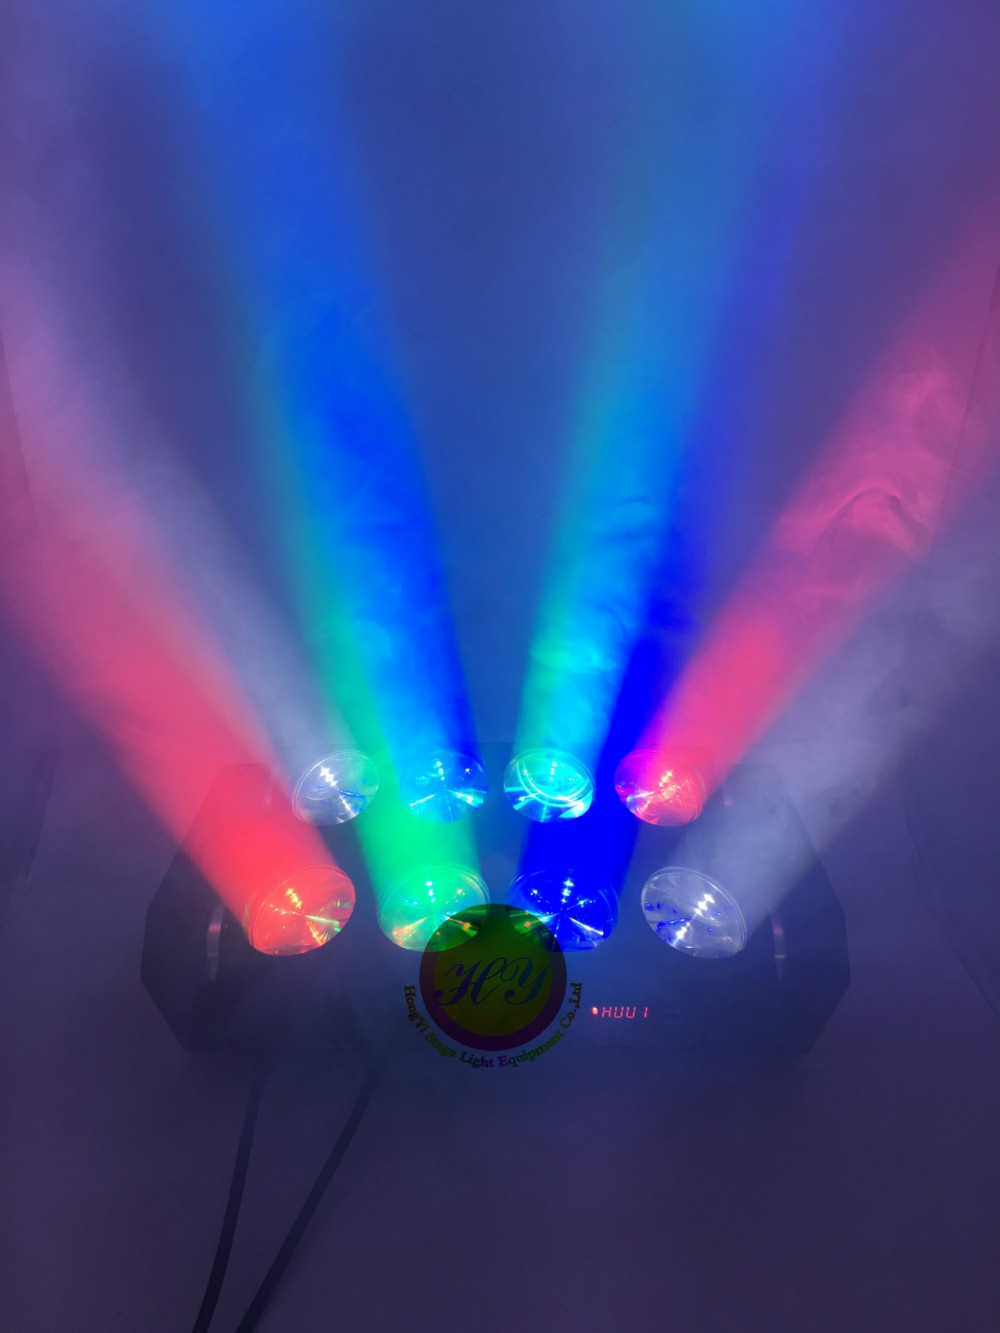 Led Spider Light 8x12W 4in1 RGBW beam moving head beam led spider light rgbw Beam Moving Head Lights(China (Mainland))